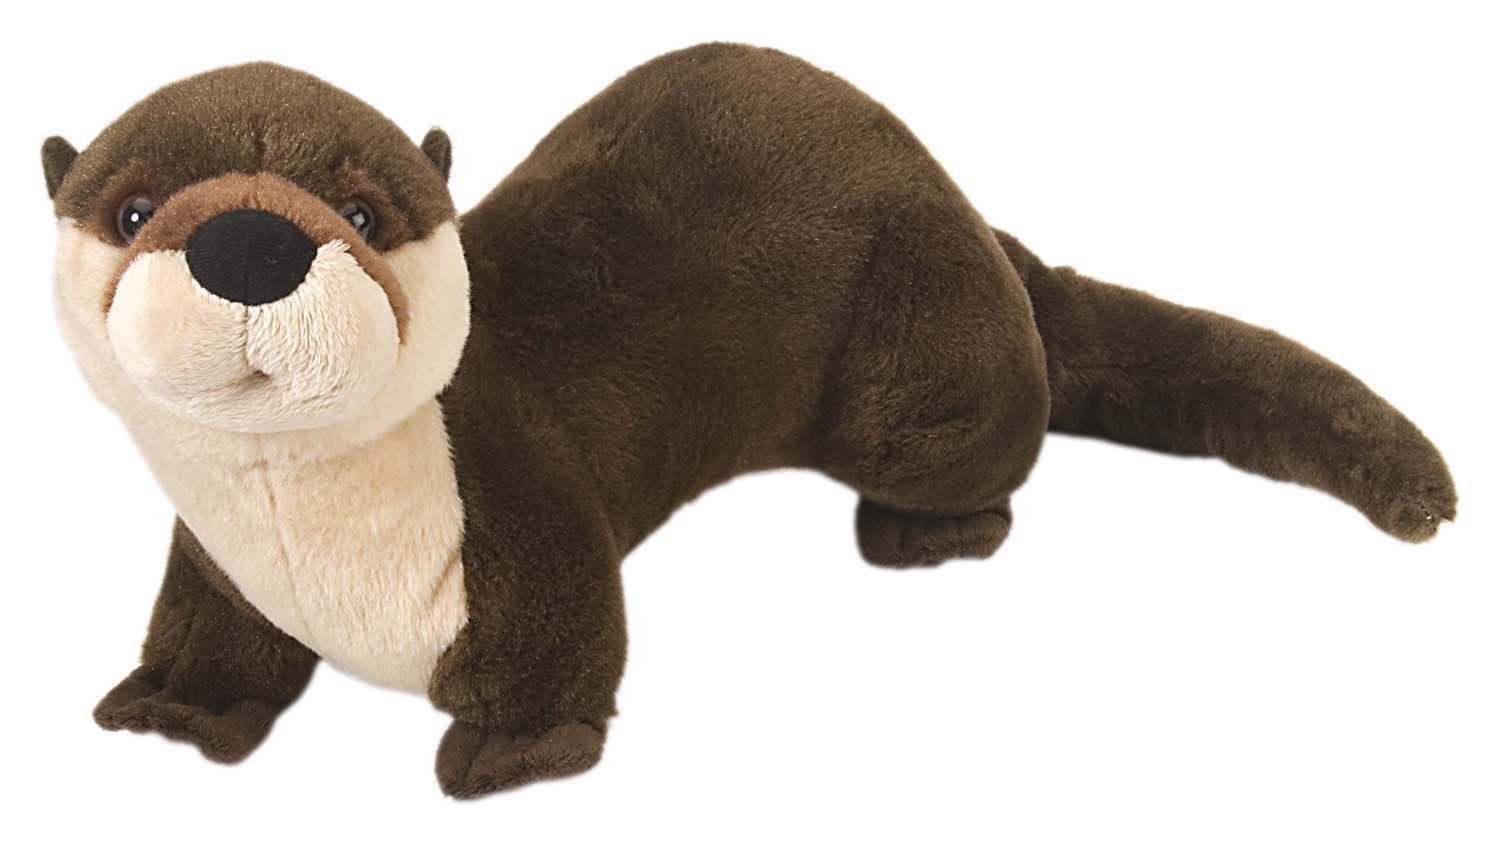 Cuddly Otter - Fully Customisable Plush